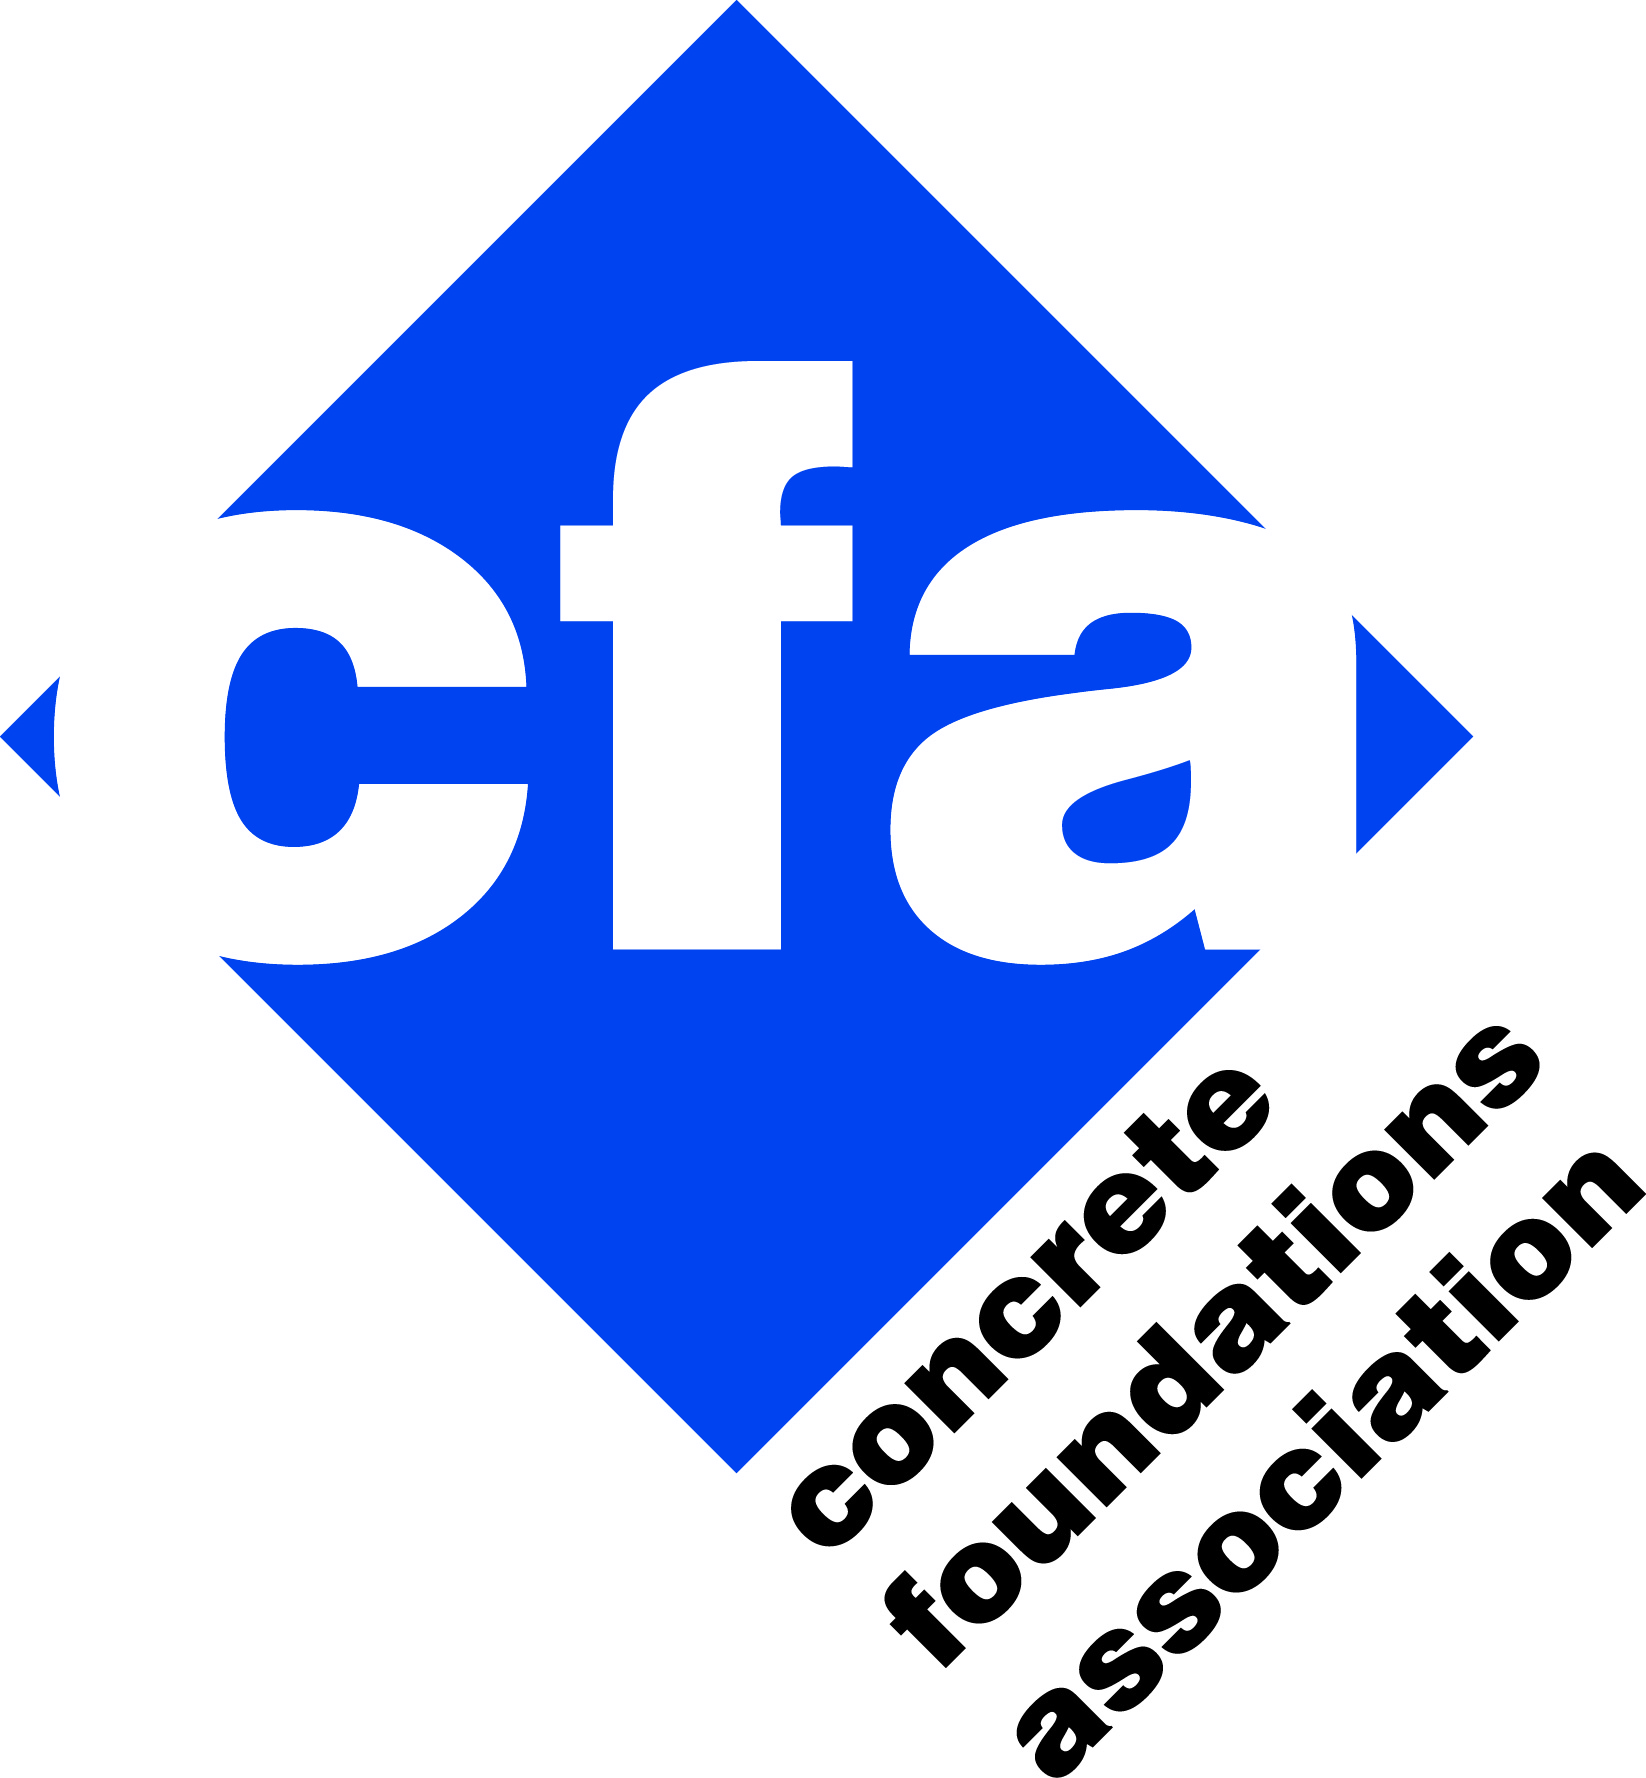 cfa logo 2012 (color)